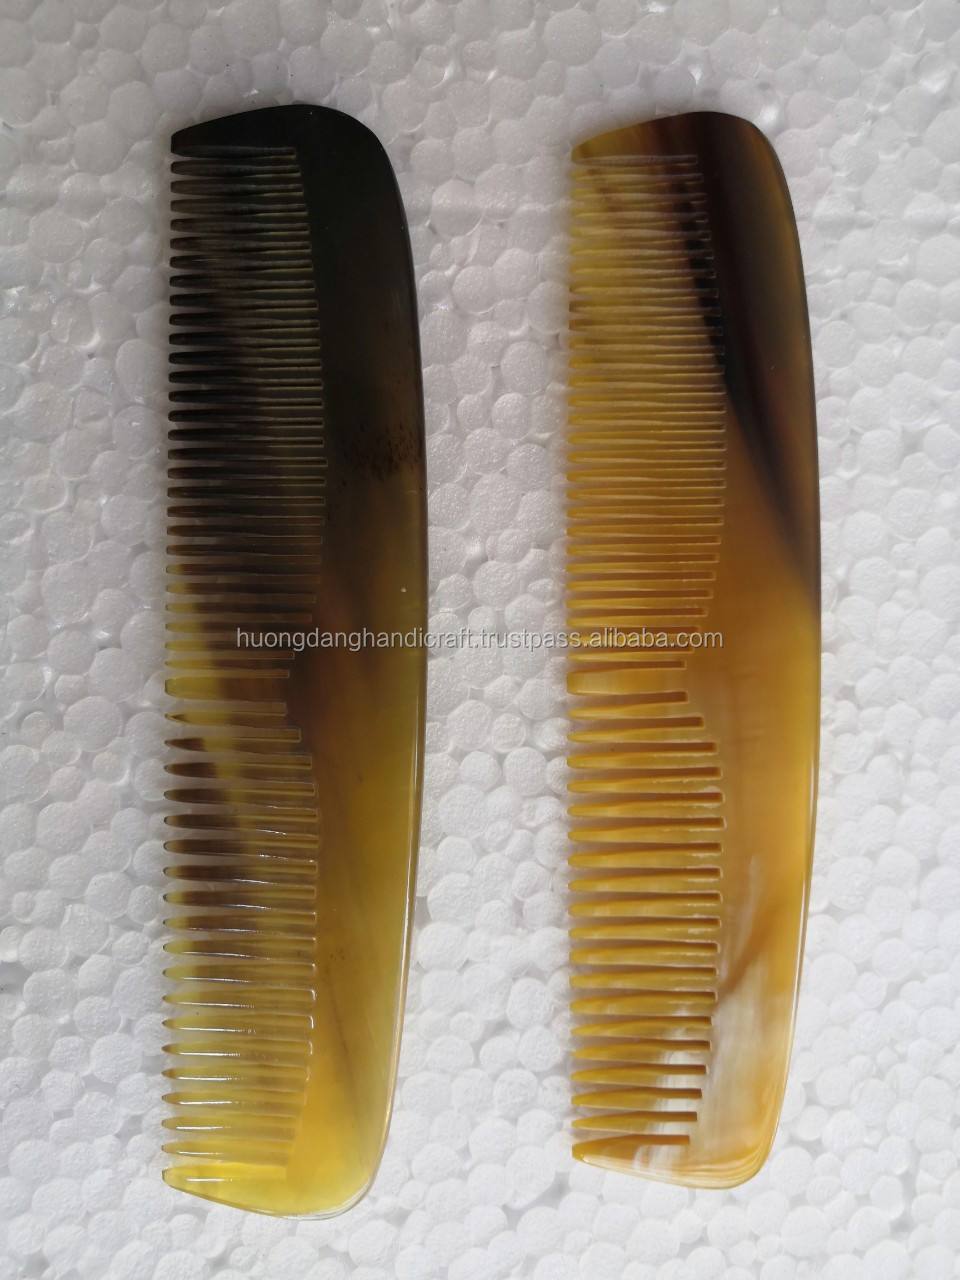 Yellow Durable Horn Comb, Hair Cutting Comb Custom Logo Salon Professional